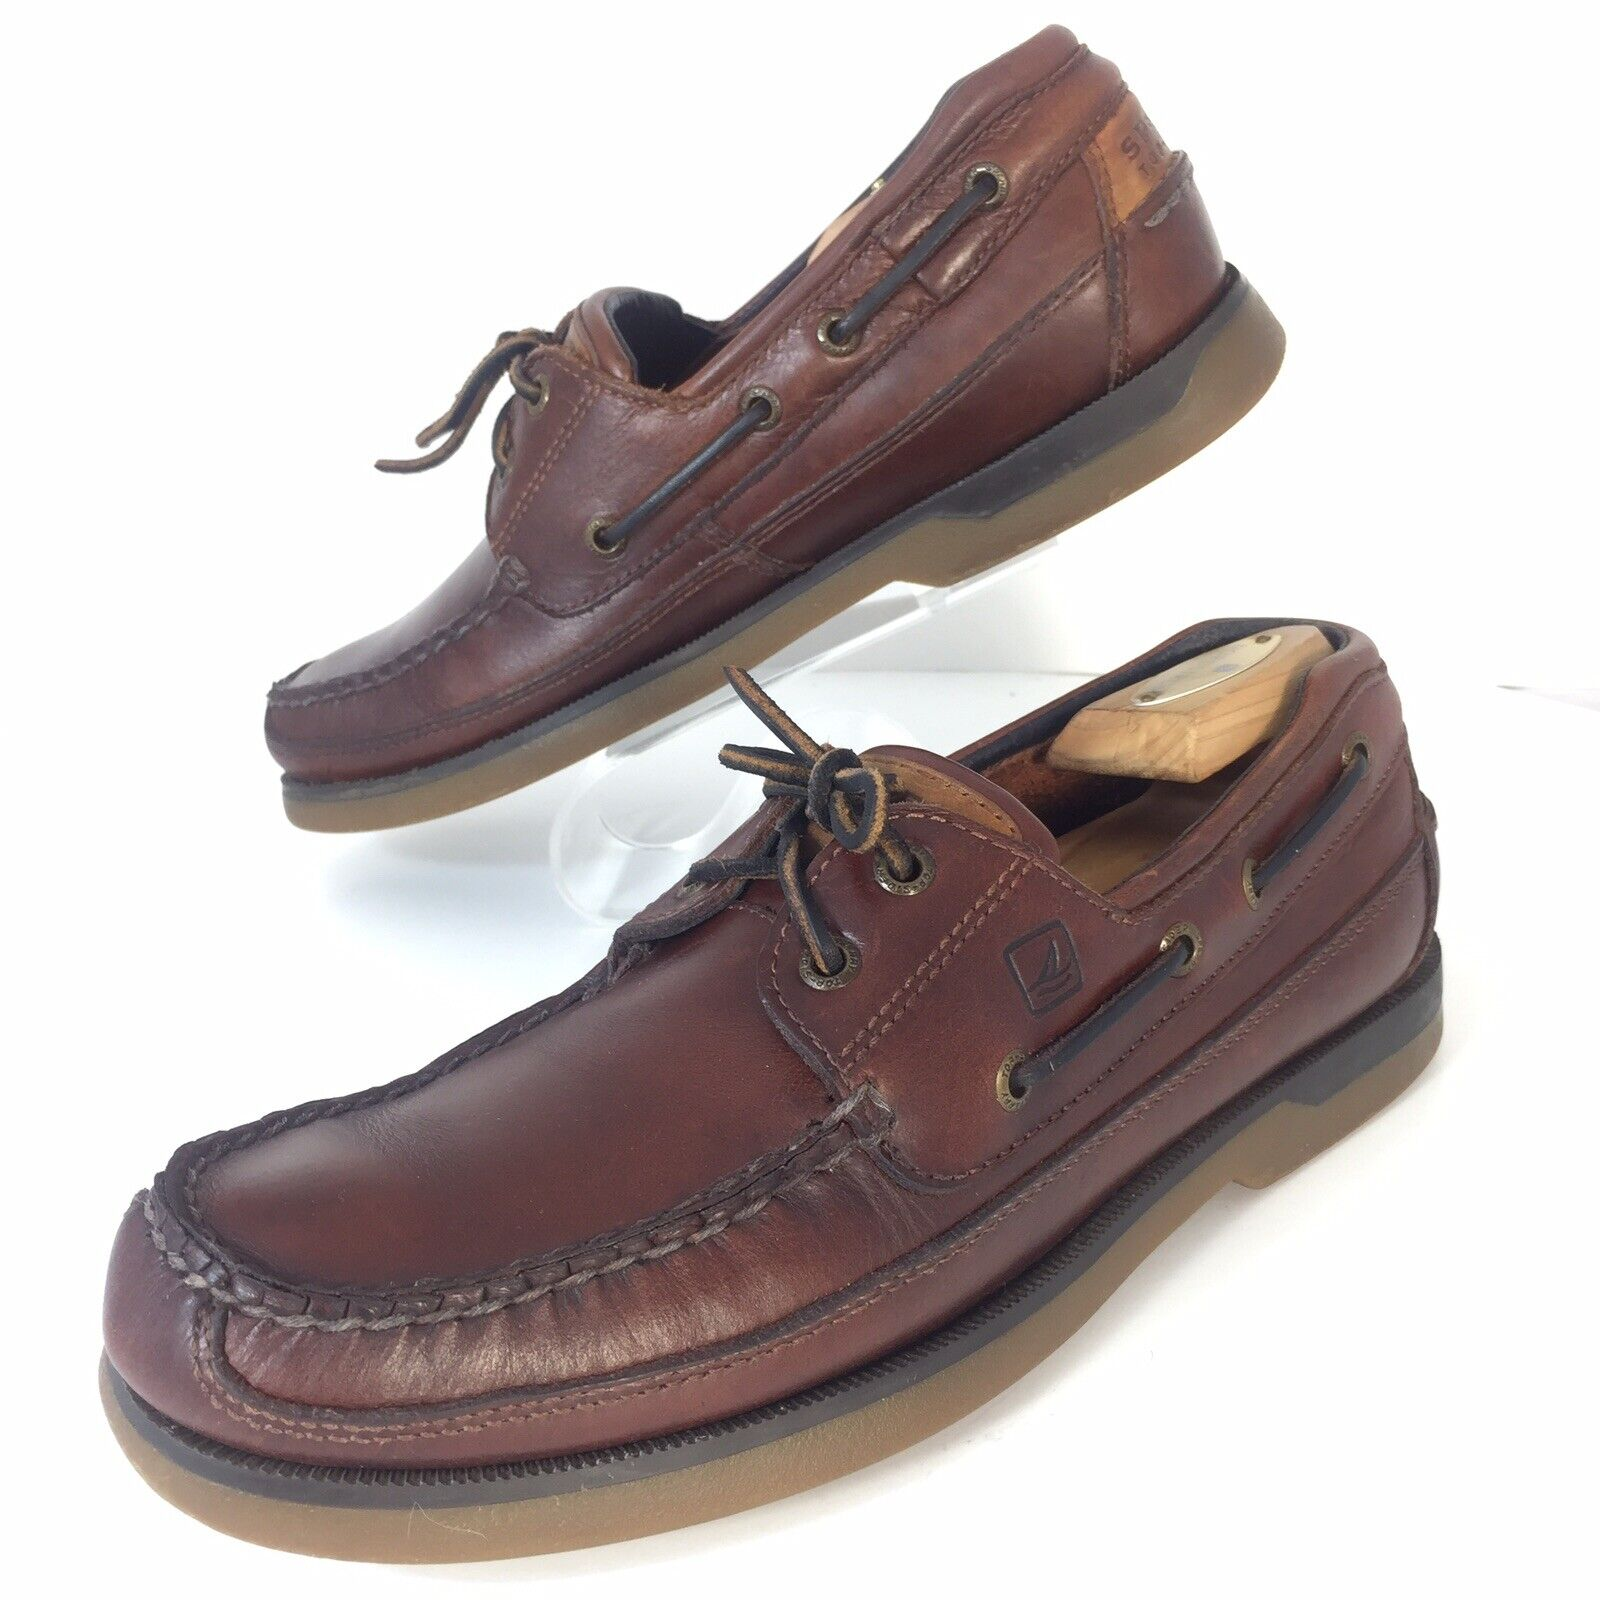 Sperry Top Sider Mens Size 9 Brown Leather Boat Casual shoes Mako Lace Up EUC